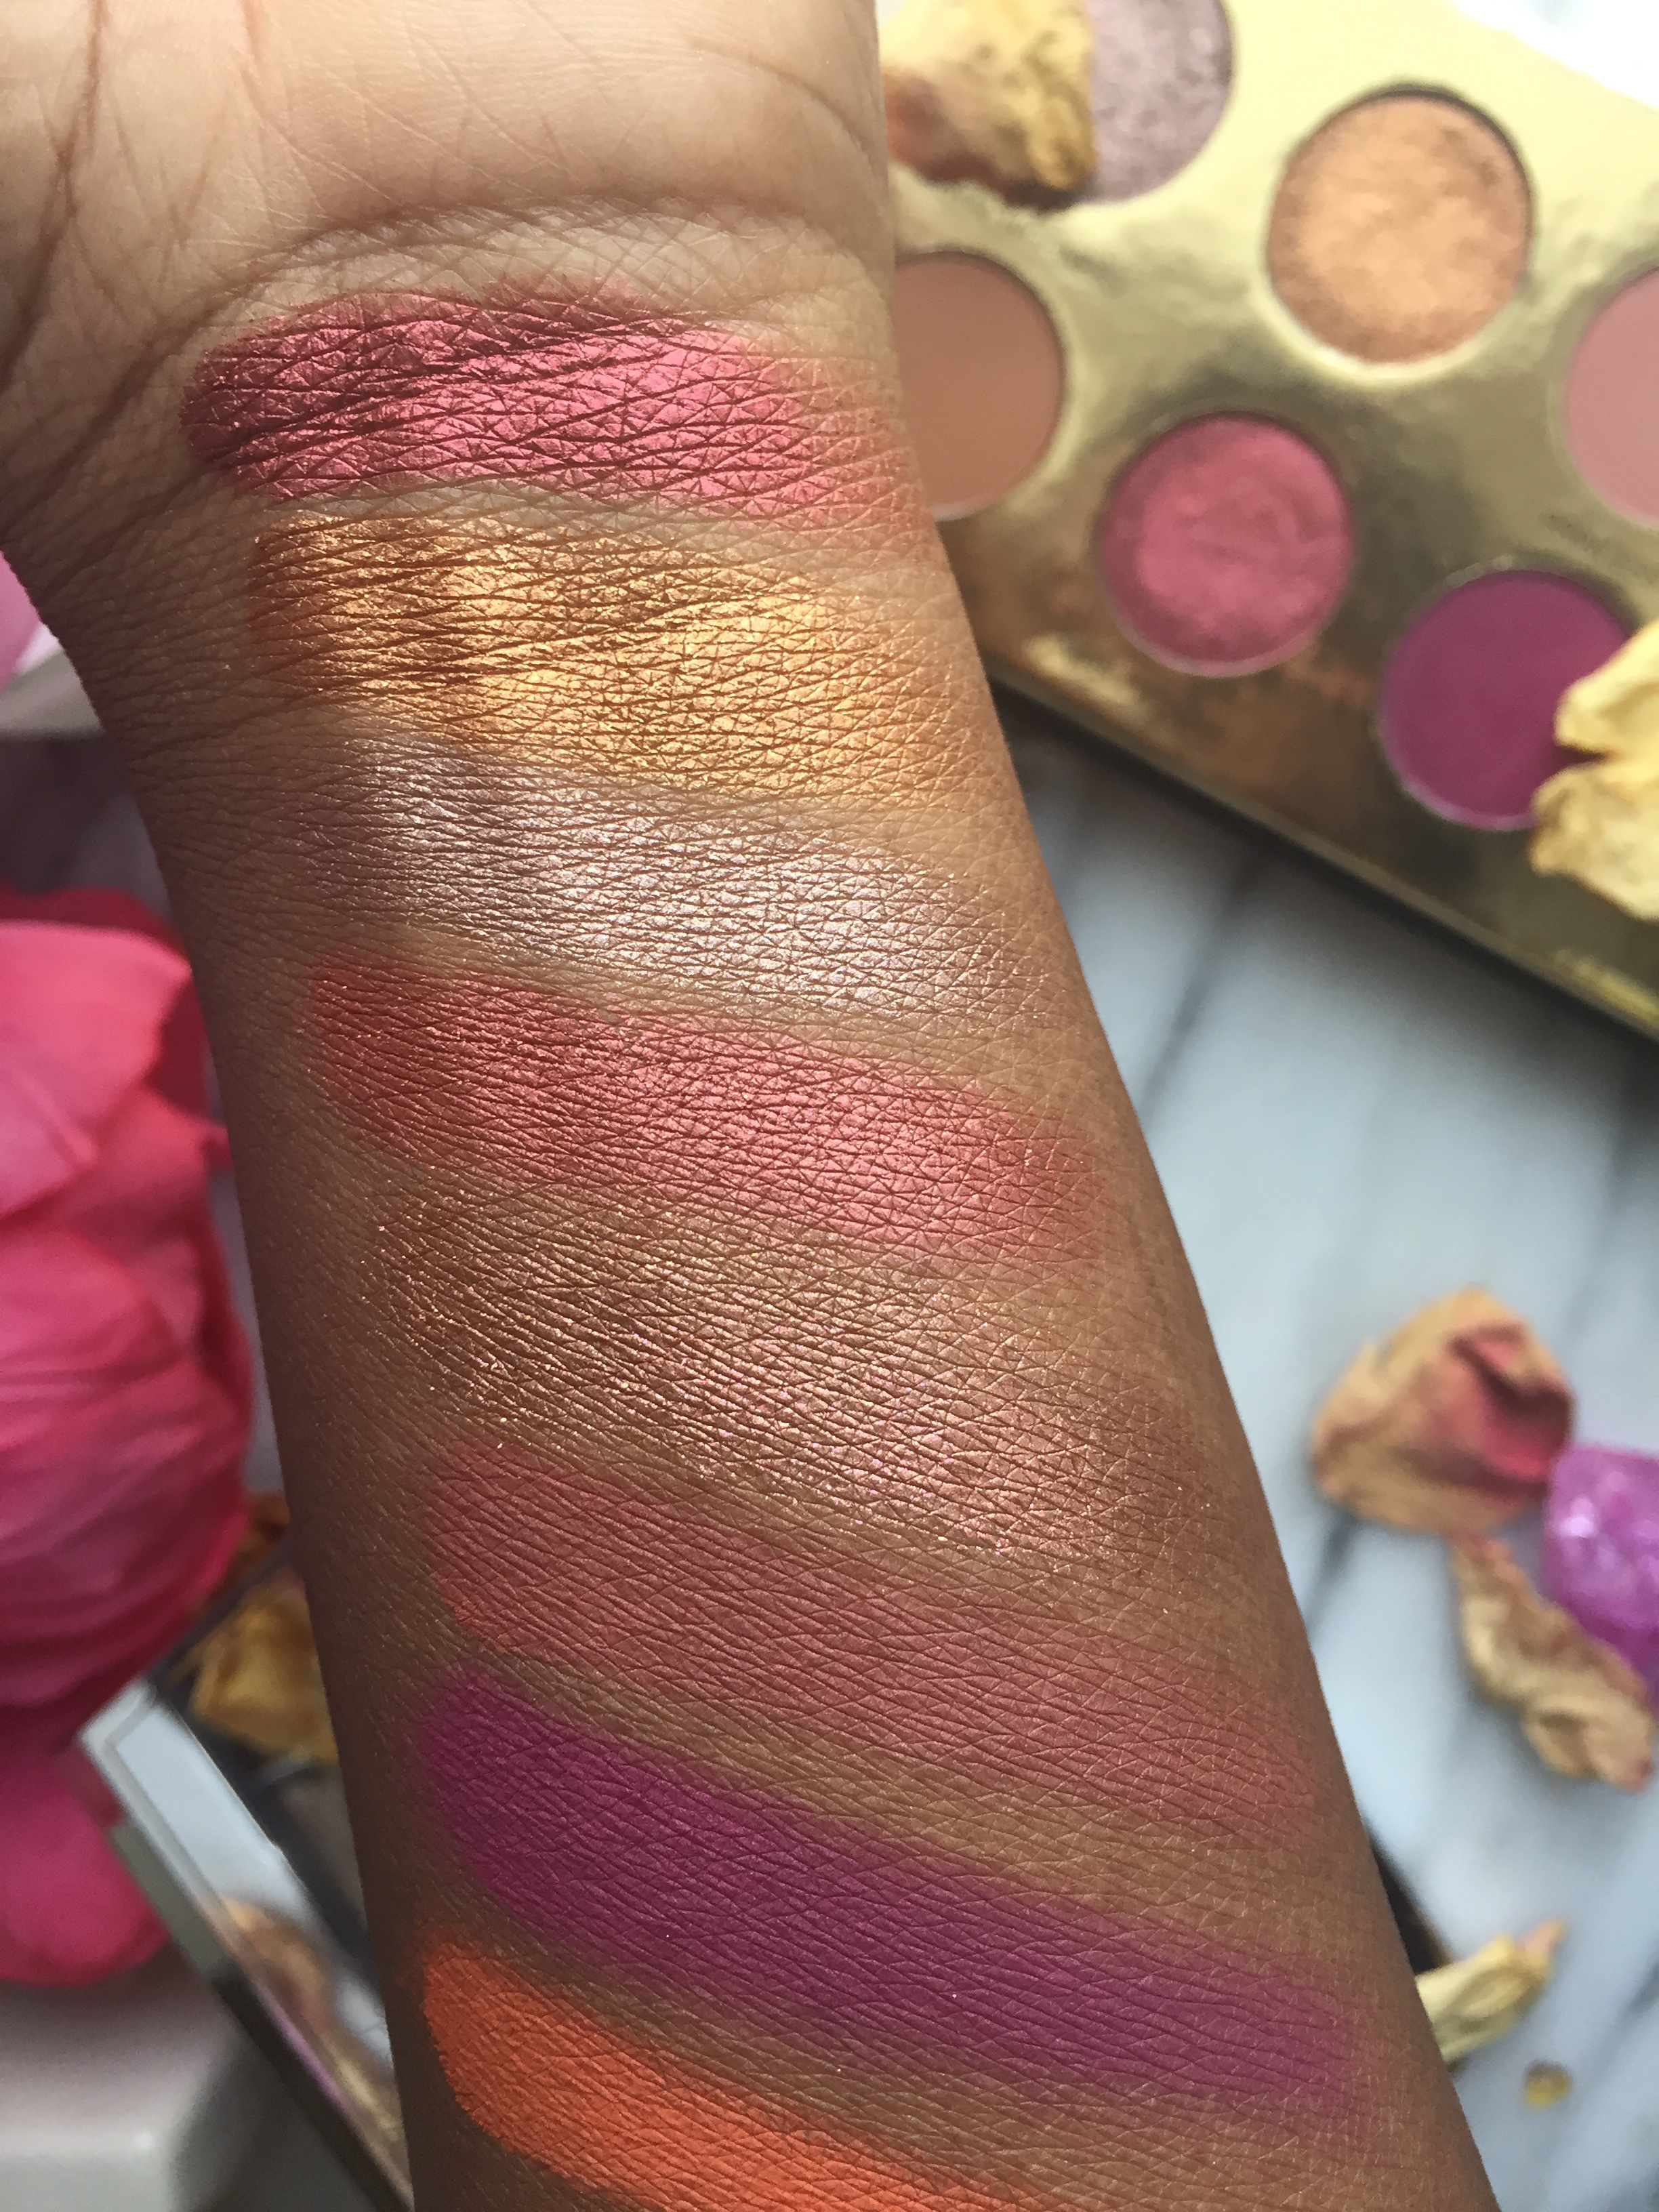 Swatches of Queen of Hearts and Wanted Palette